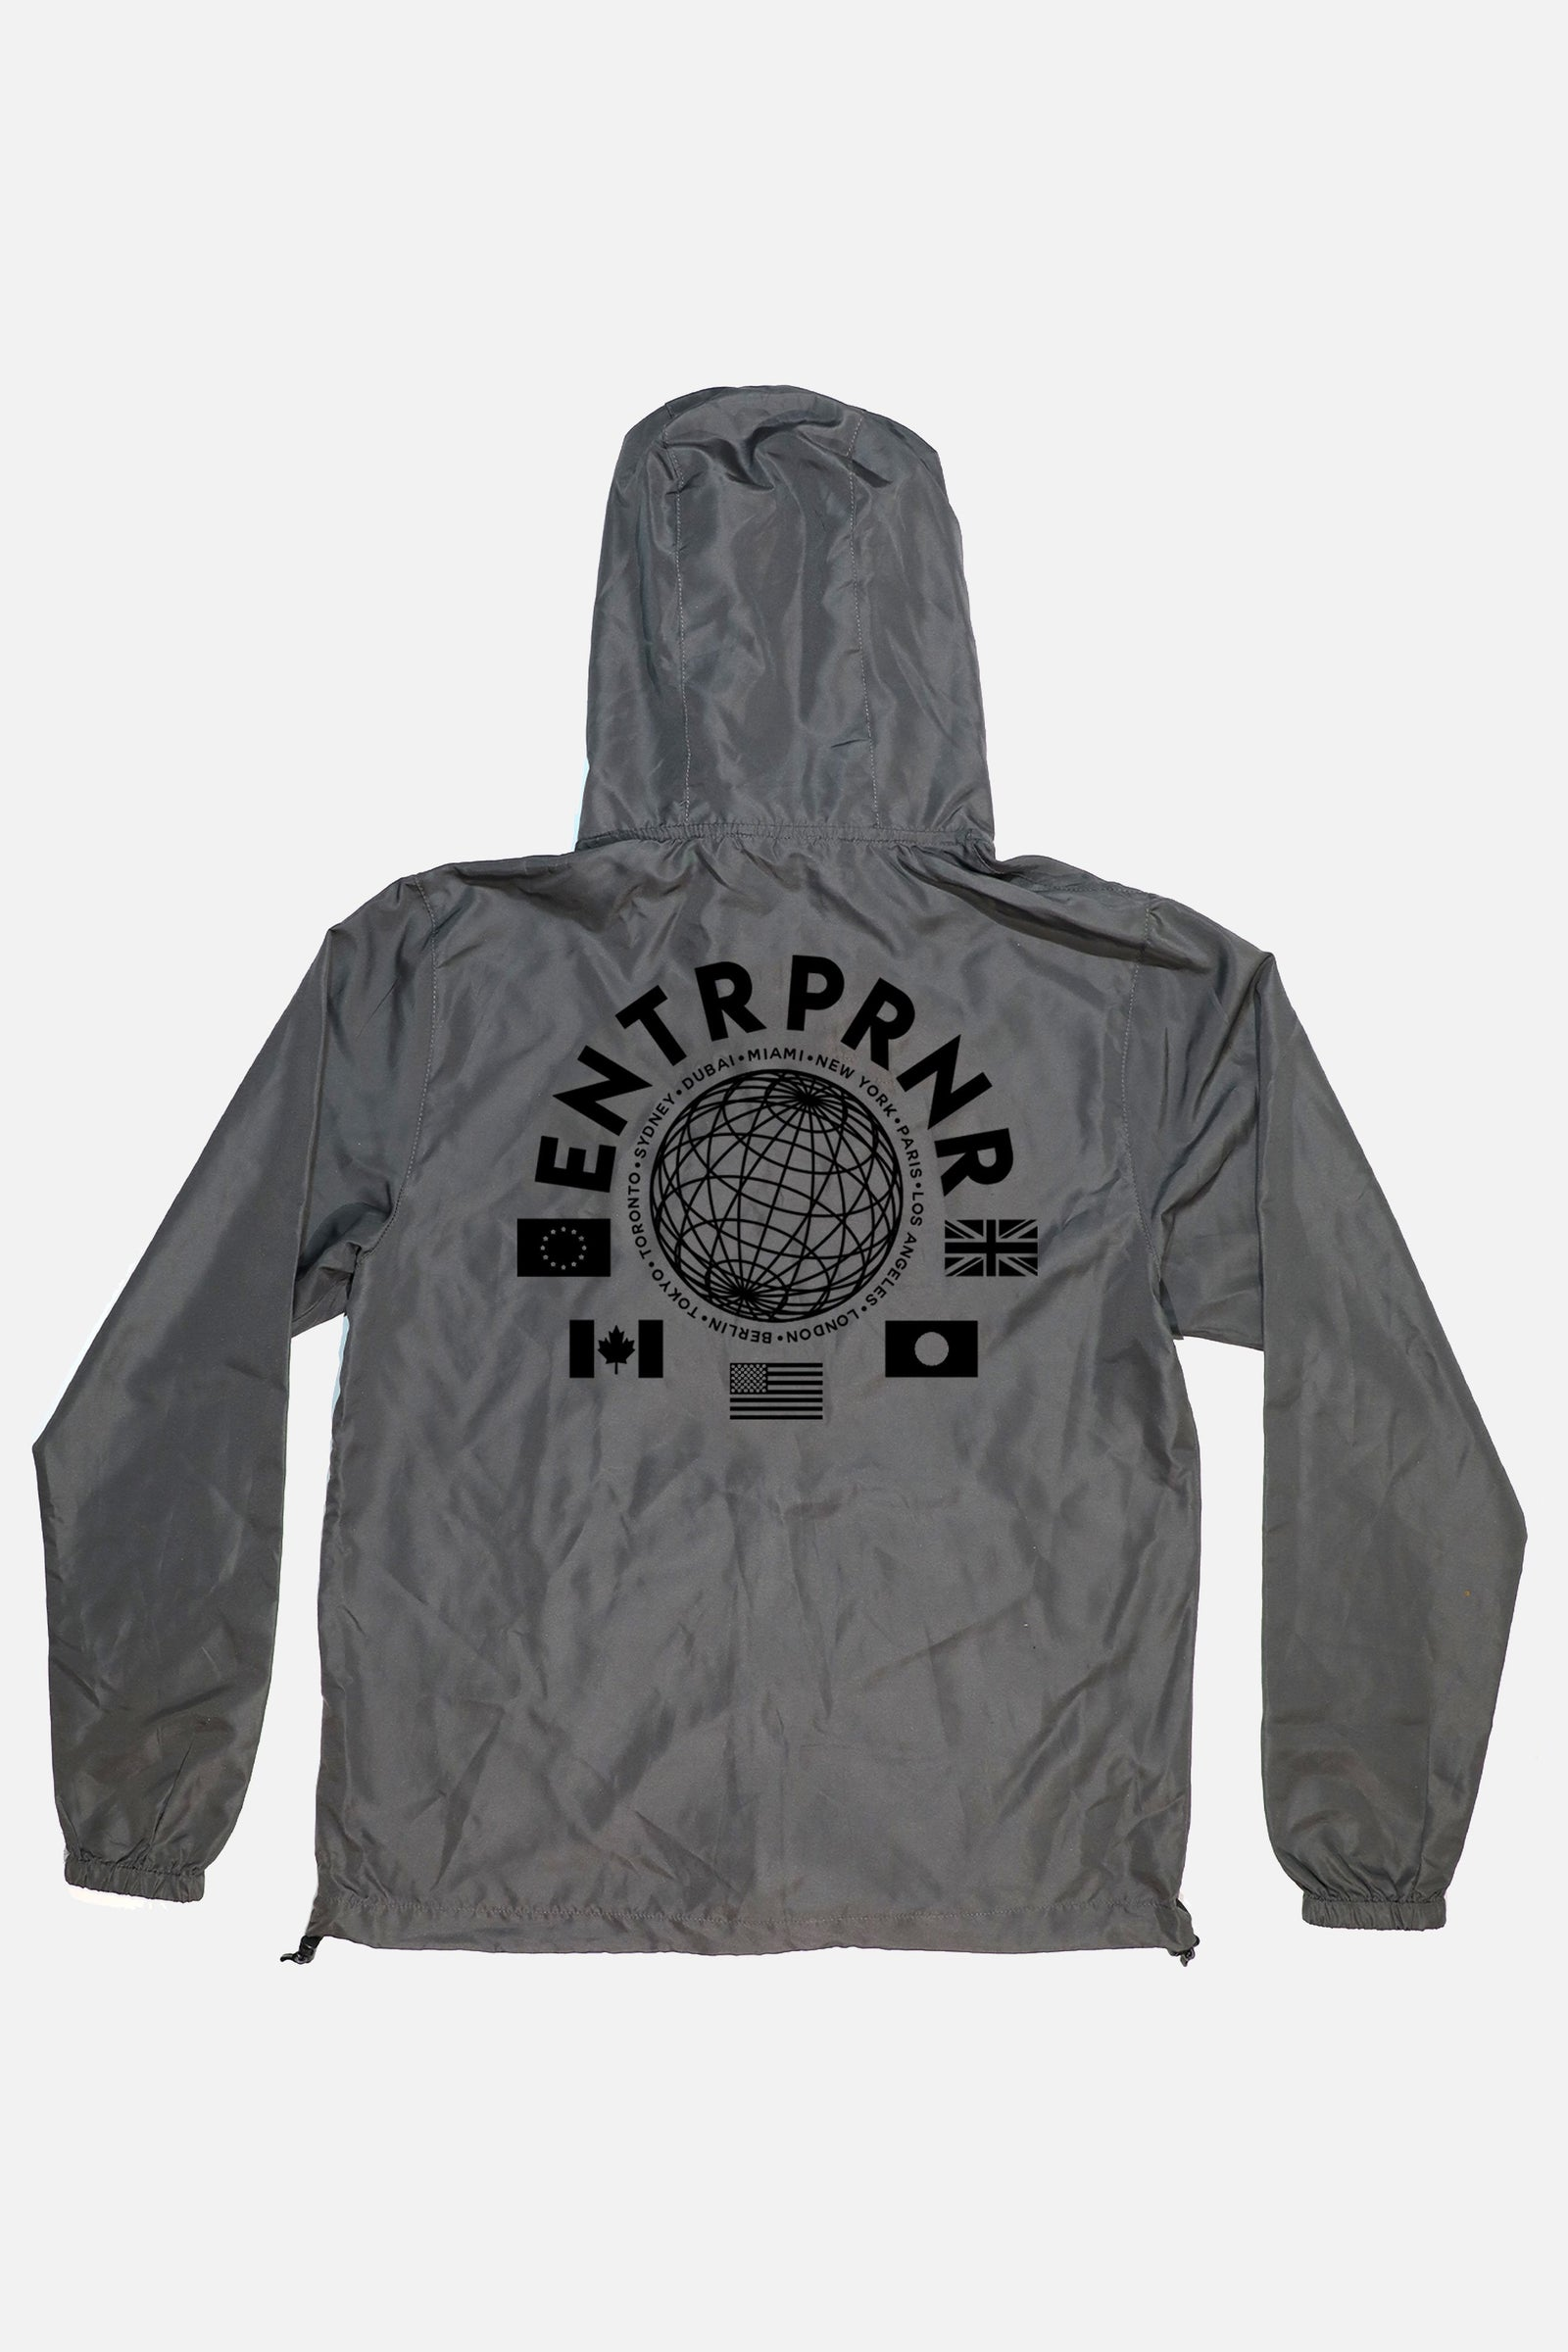 ENTRPRNR Worldwide Windbreaker - Graphite - ENTRPRNR® | The Entrepreneur's Clothing Brand. | Stagnancy is the Enemy. Action is King.